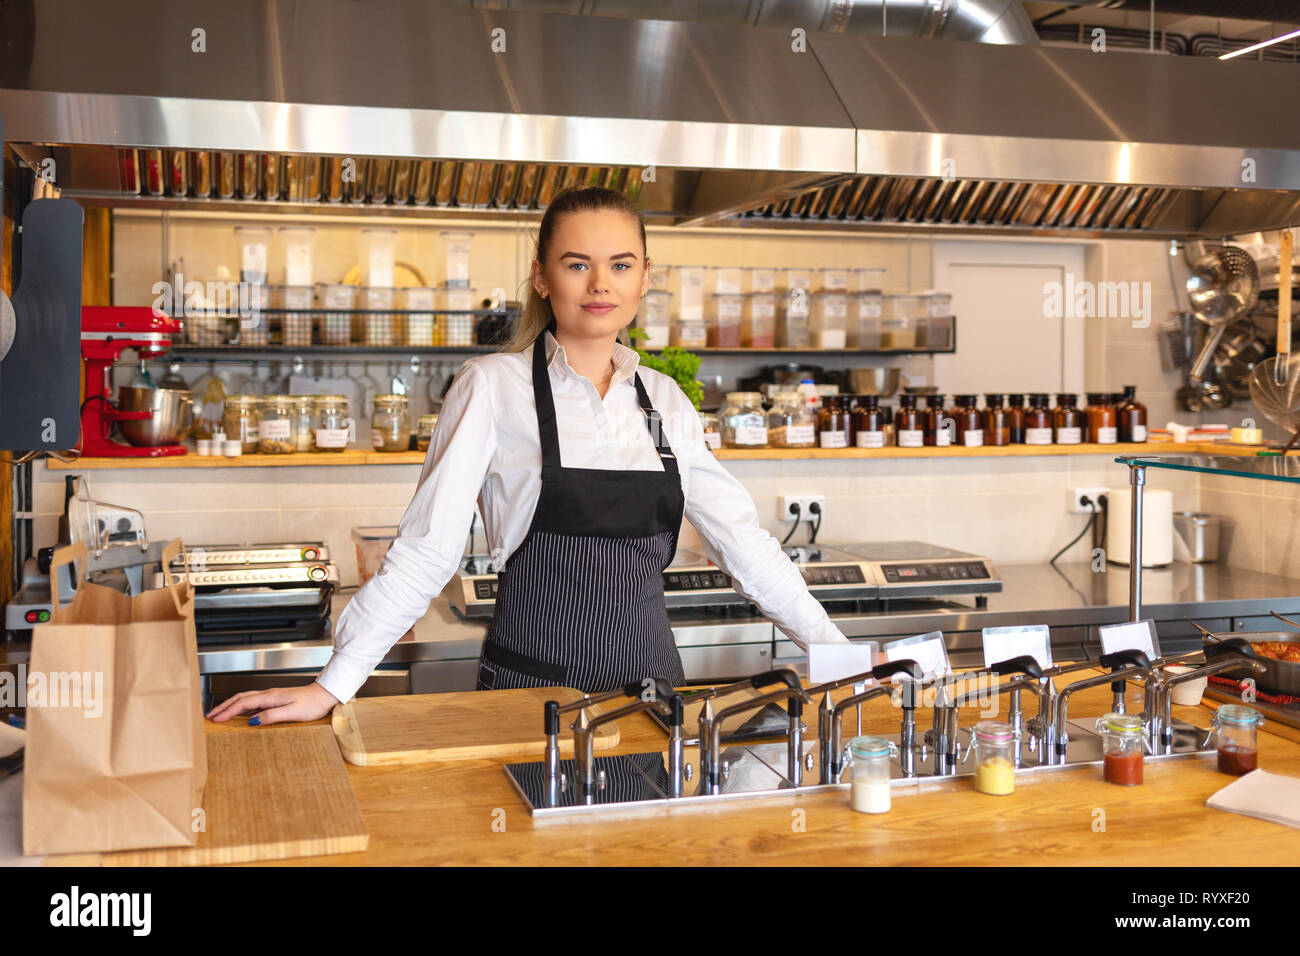 Portrait of young woman standing behind kitchen counter in small eatery – restaurant owner wearing apron looking confident at camera smiling - Stock Image